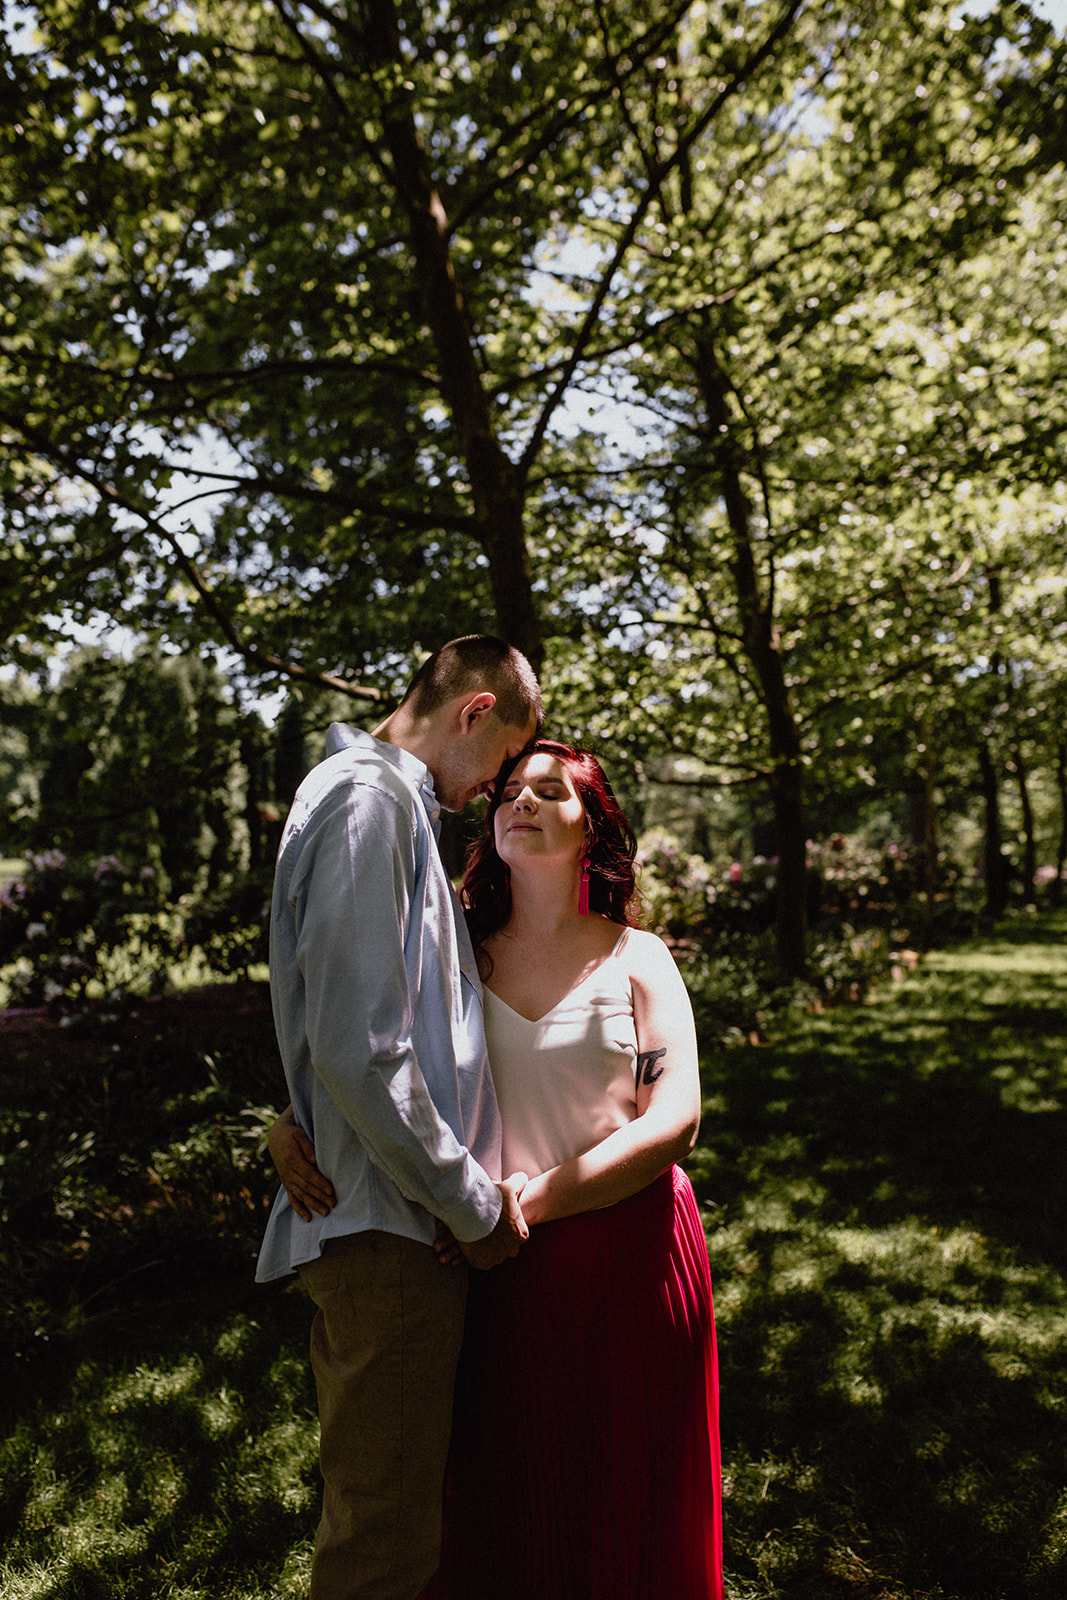 stan hywet engagement session - lana + zach 62